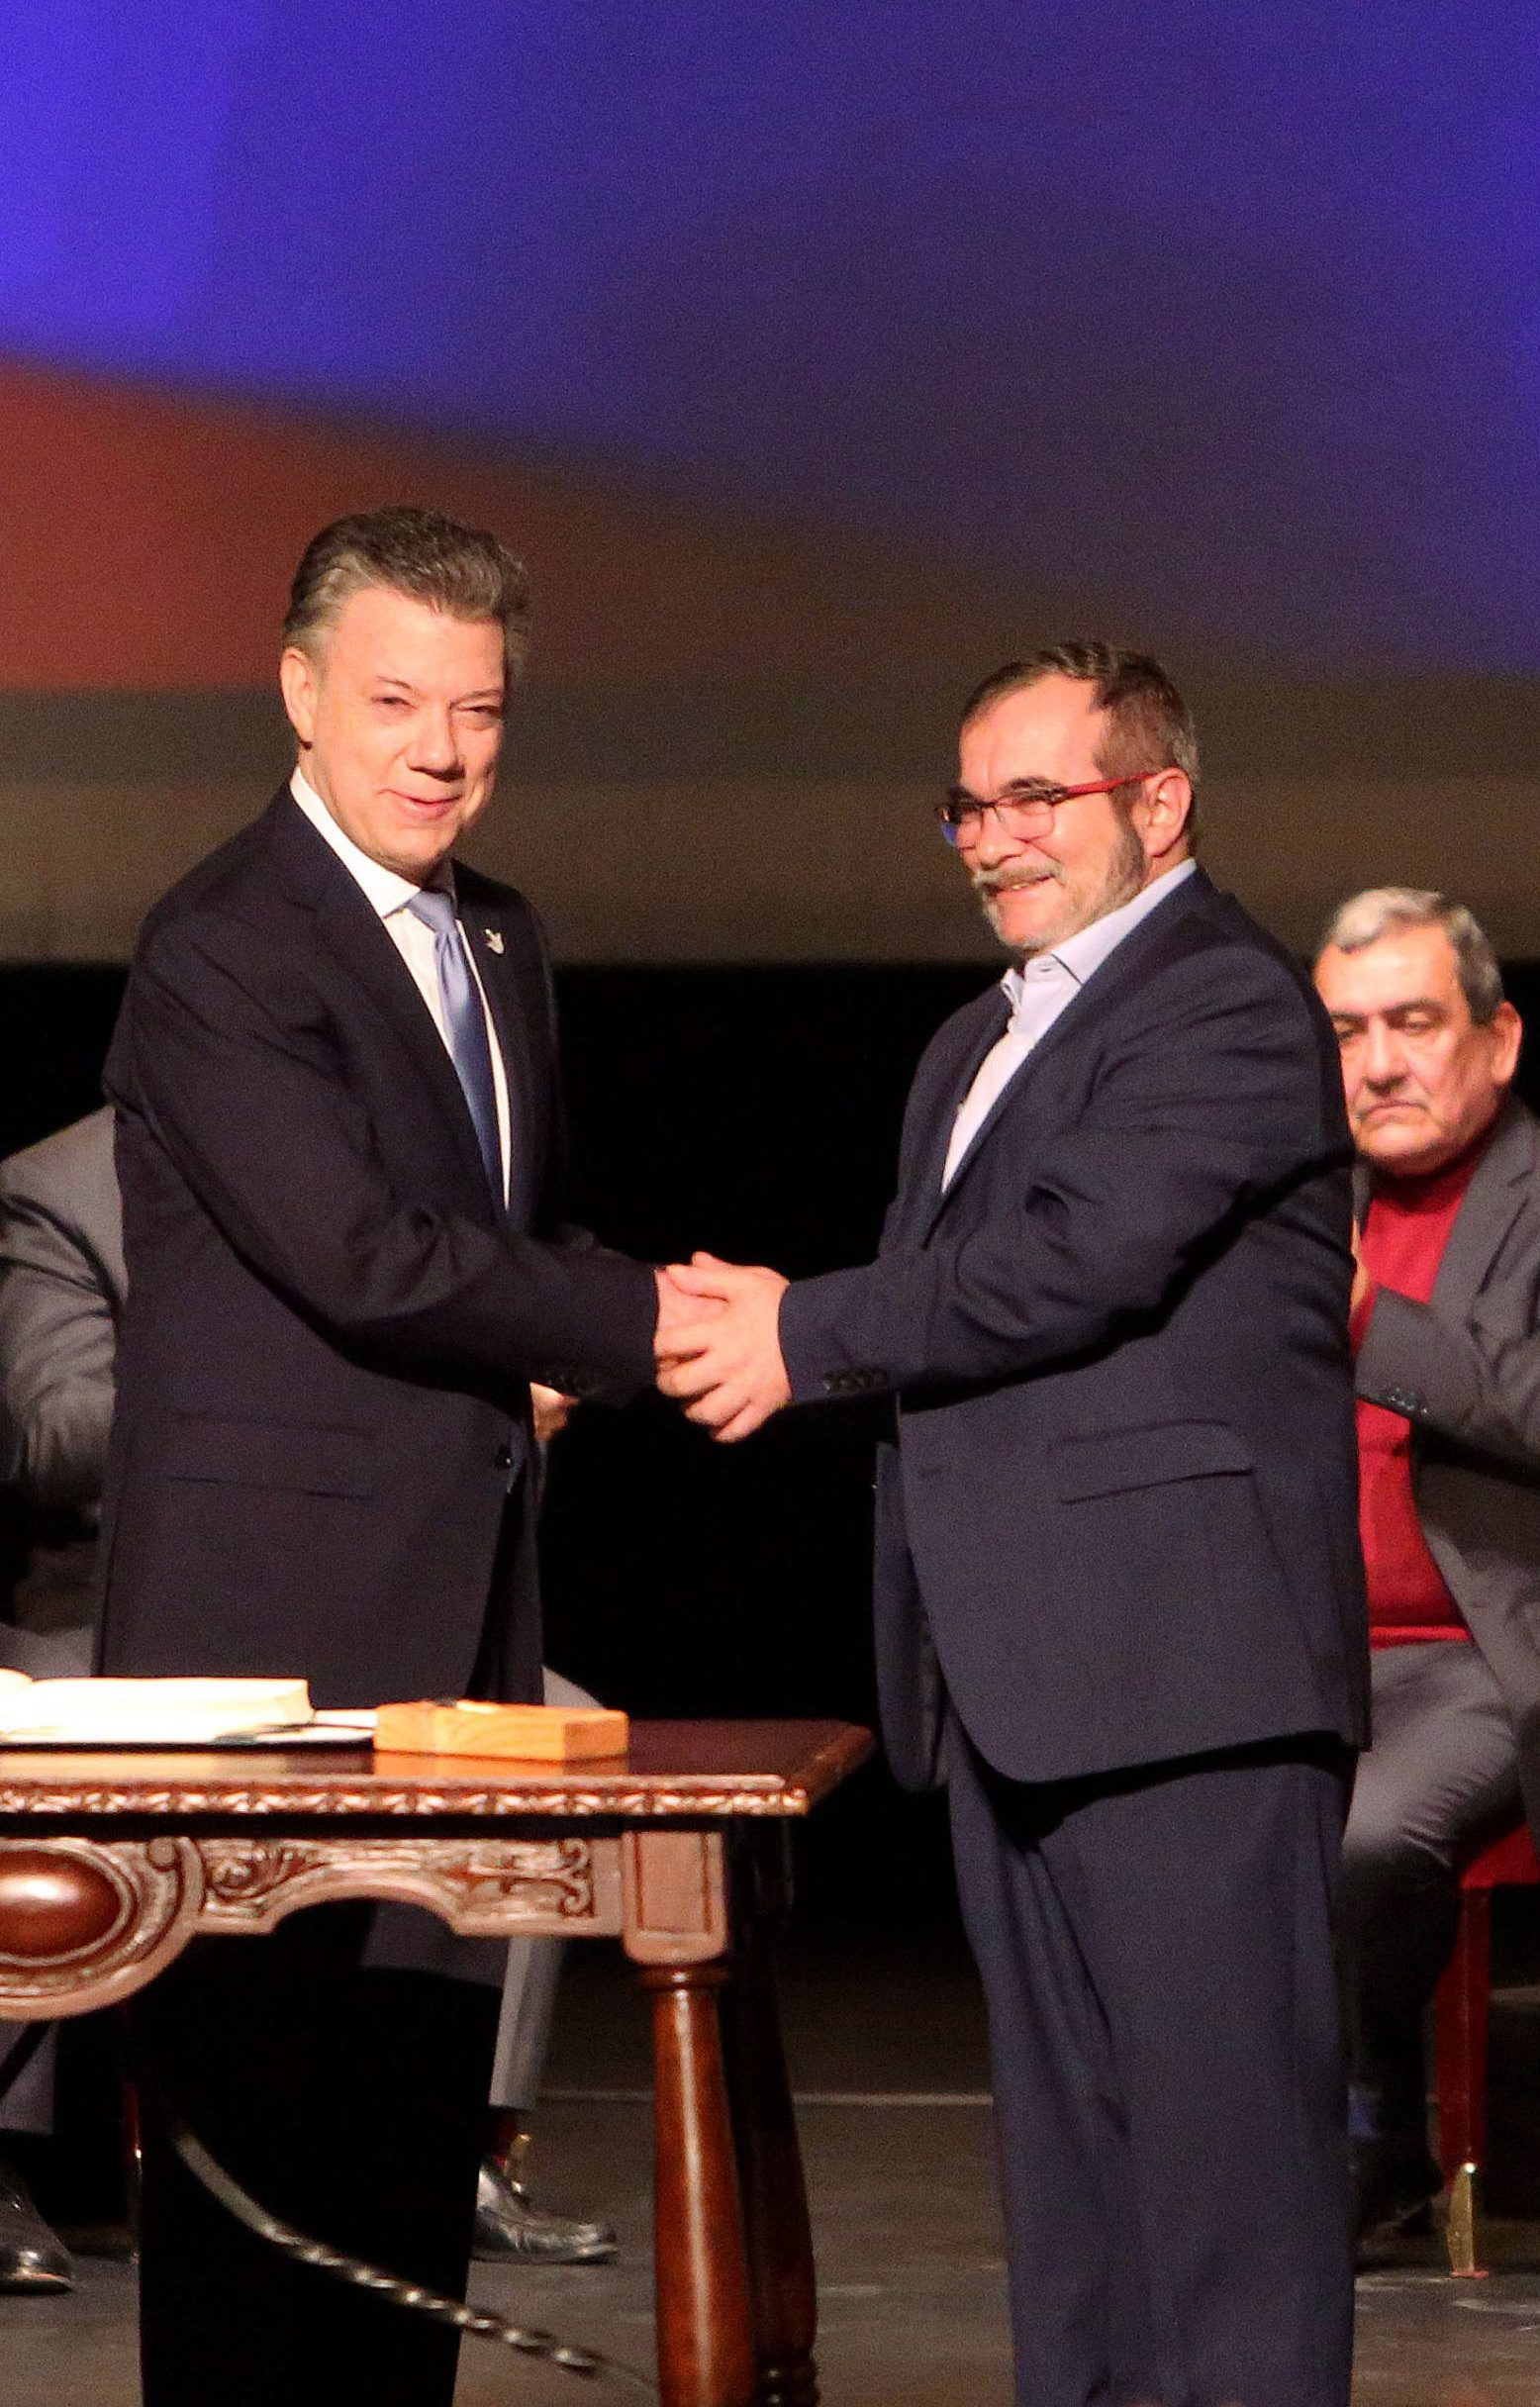 President of Colombia Juan Manuel Santos (L) and Chief of the FARC Rodrigo Londono Echeverry a.k.a. 'Timochenko' (R) shake hands after signing the new peace agreement 24 novembro 2016